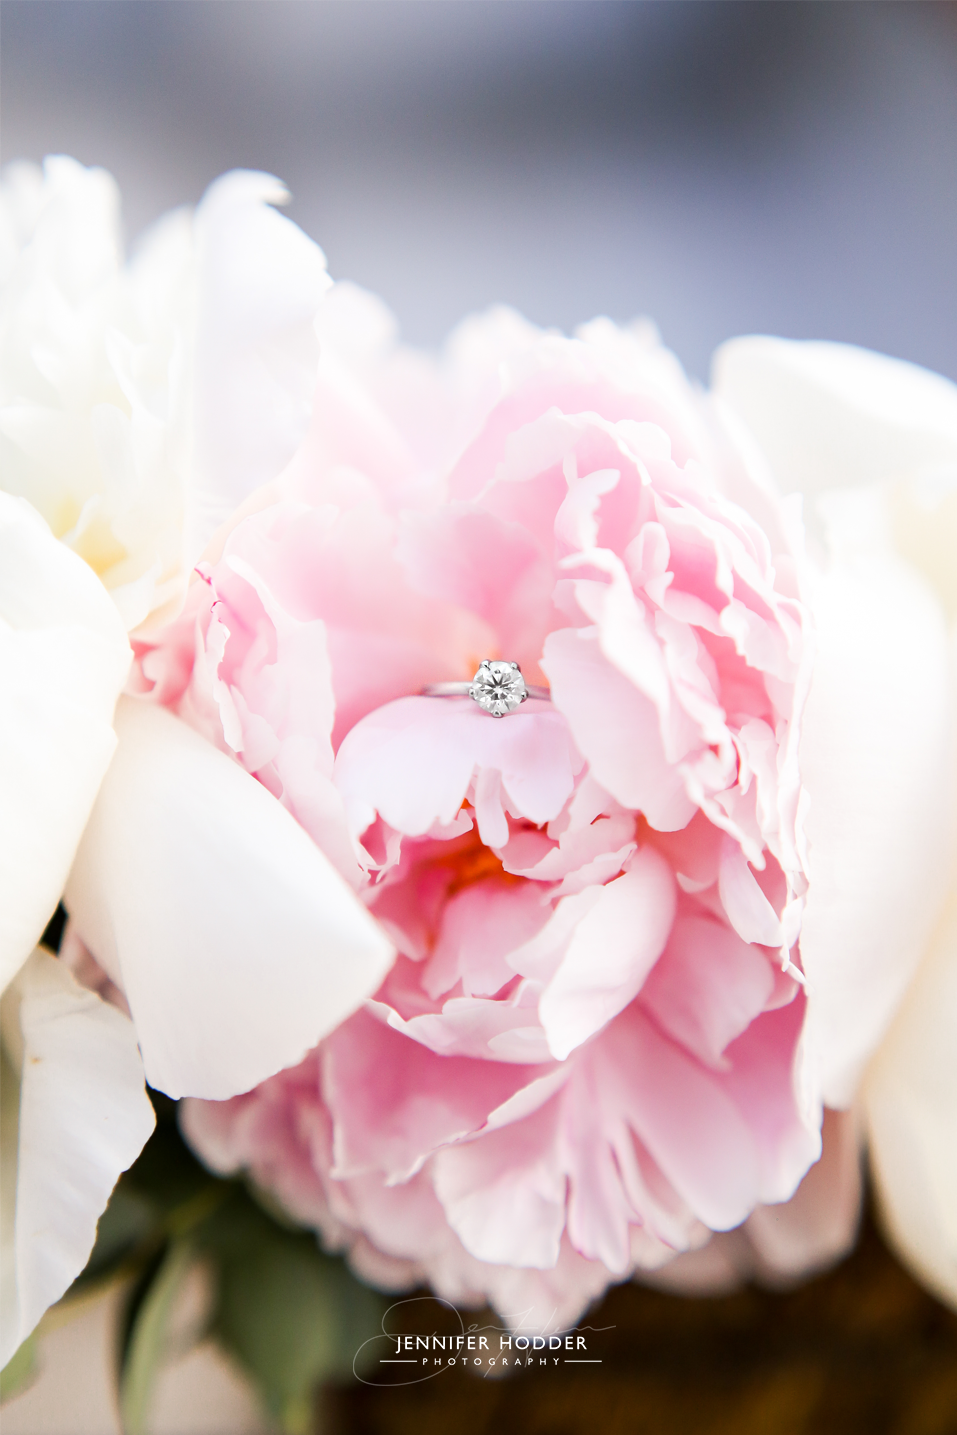 solitaire engagement ring on a peony